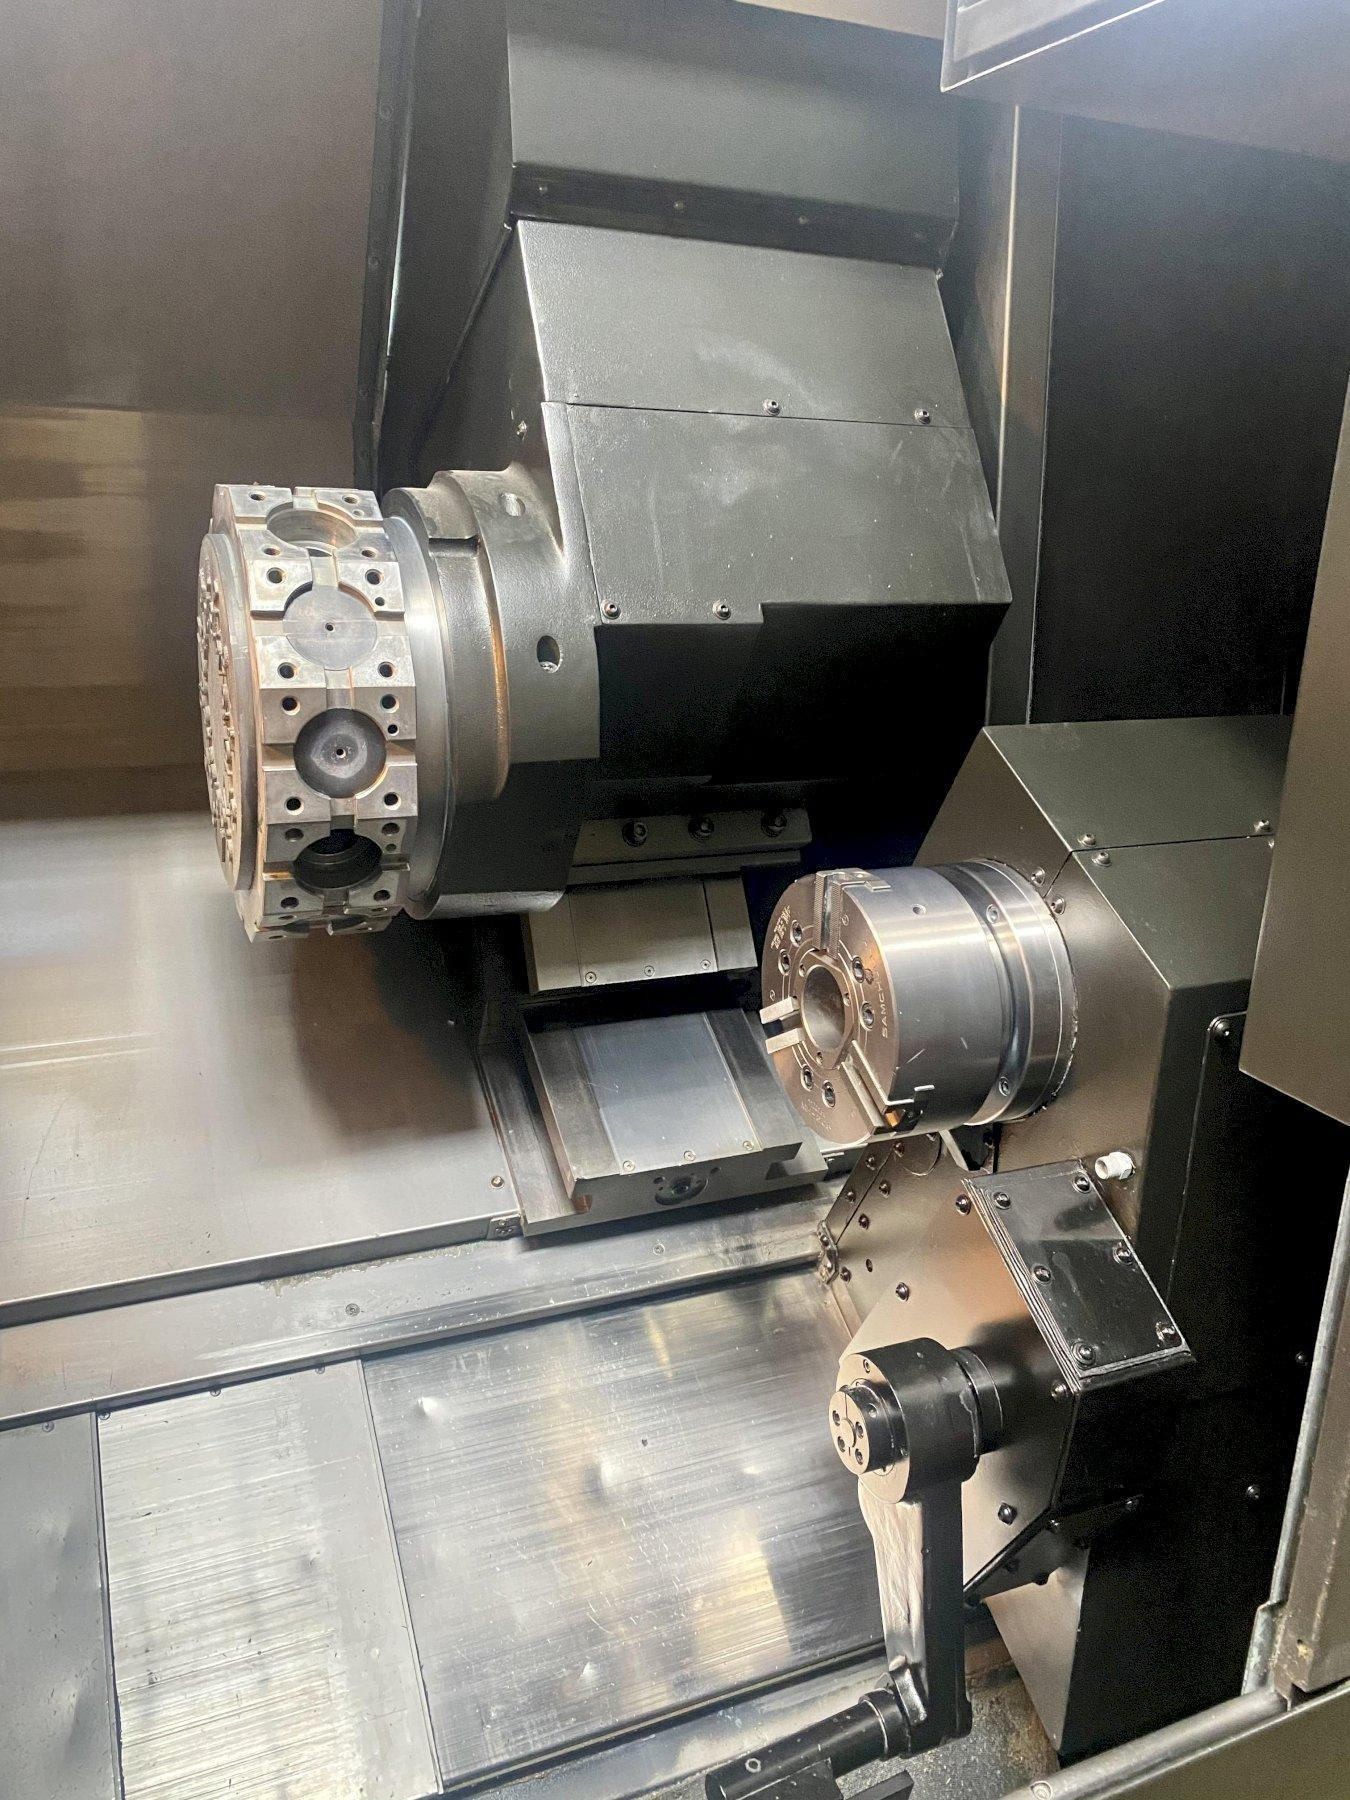 """DOOSAN PUMA 2600SY CNC TURNING CENTER, Fanuc 31i CNC Control, 10"""" & 8"""" 3-Jaw Chuck Main & Sub Spindle, 12 Station Turret w/ Live Tooling, Y & C-Axis, Parts Catcher, Chip Conveyor & Coolant System, New 2011."""